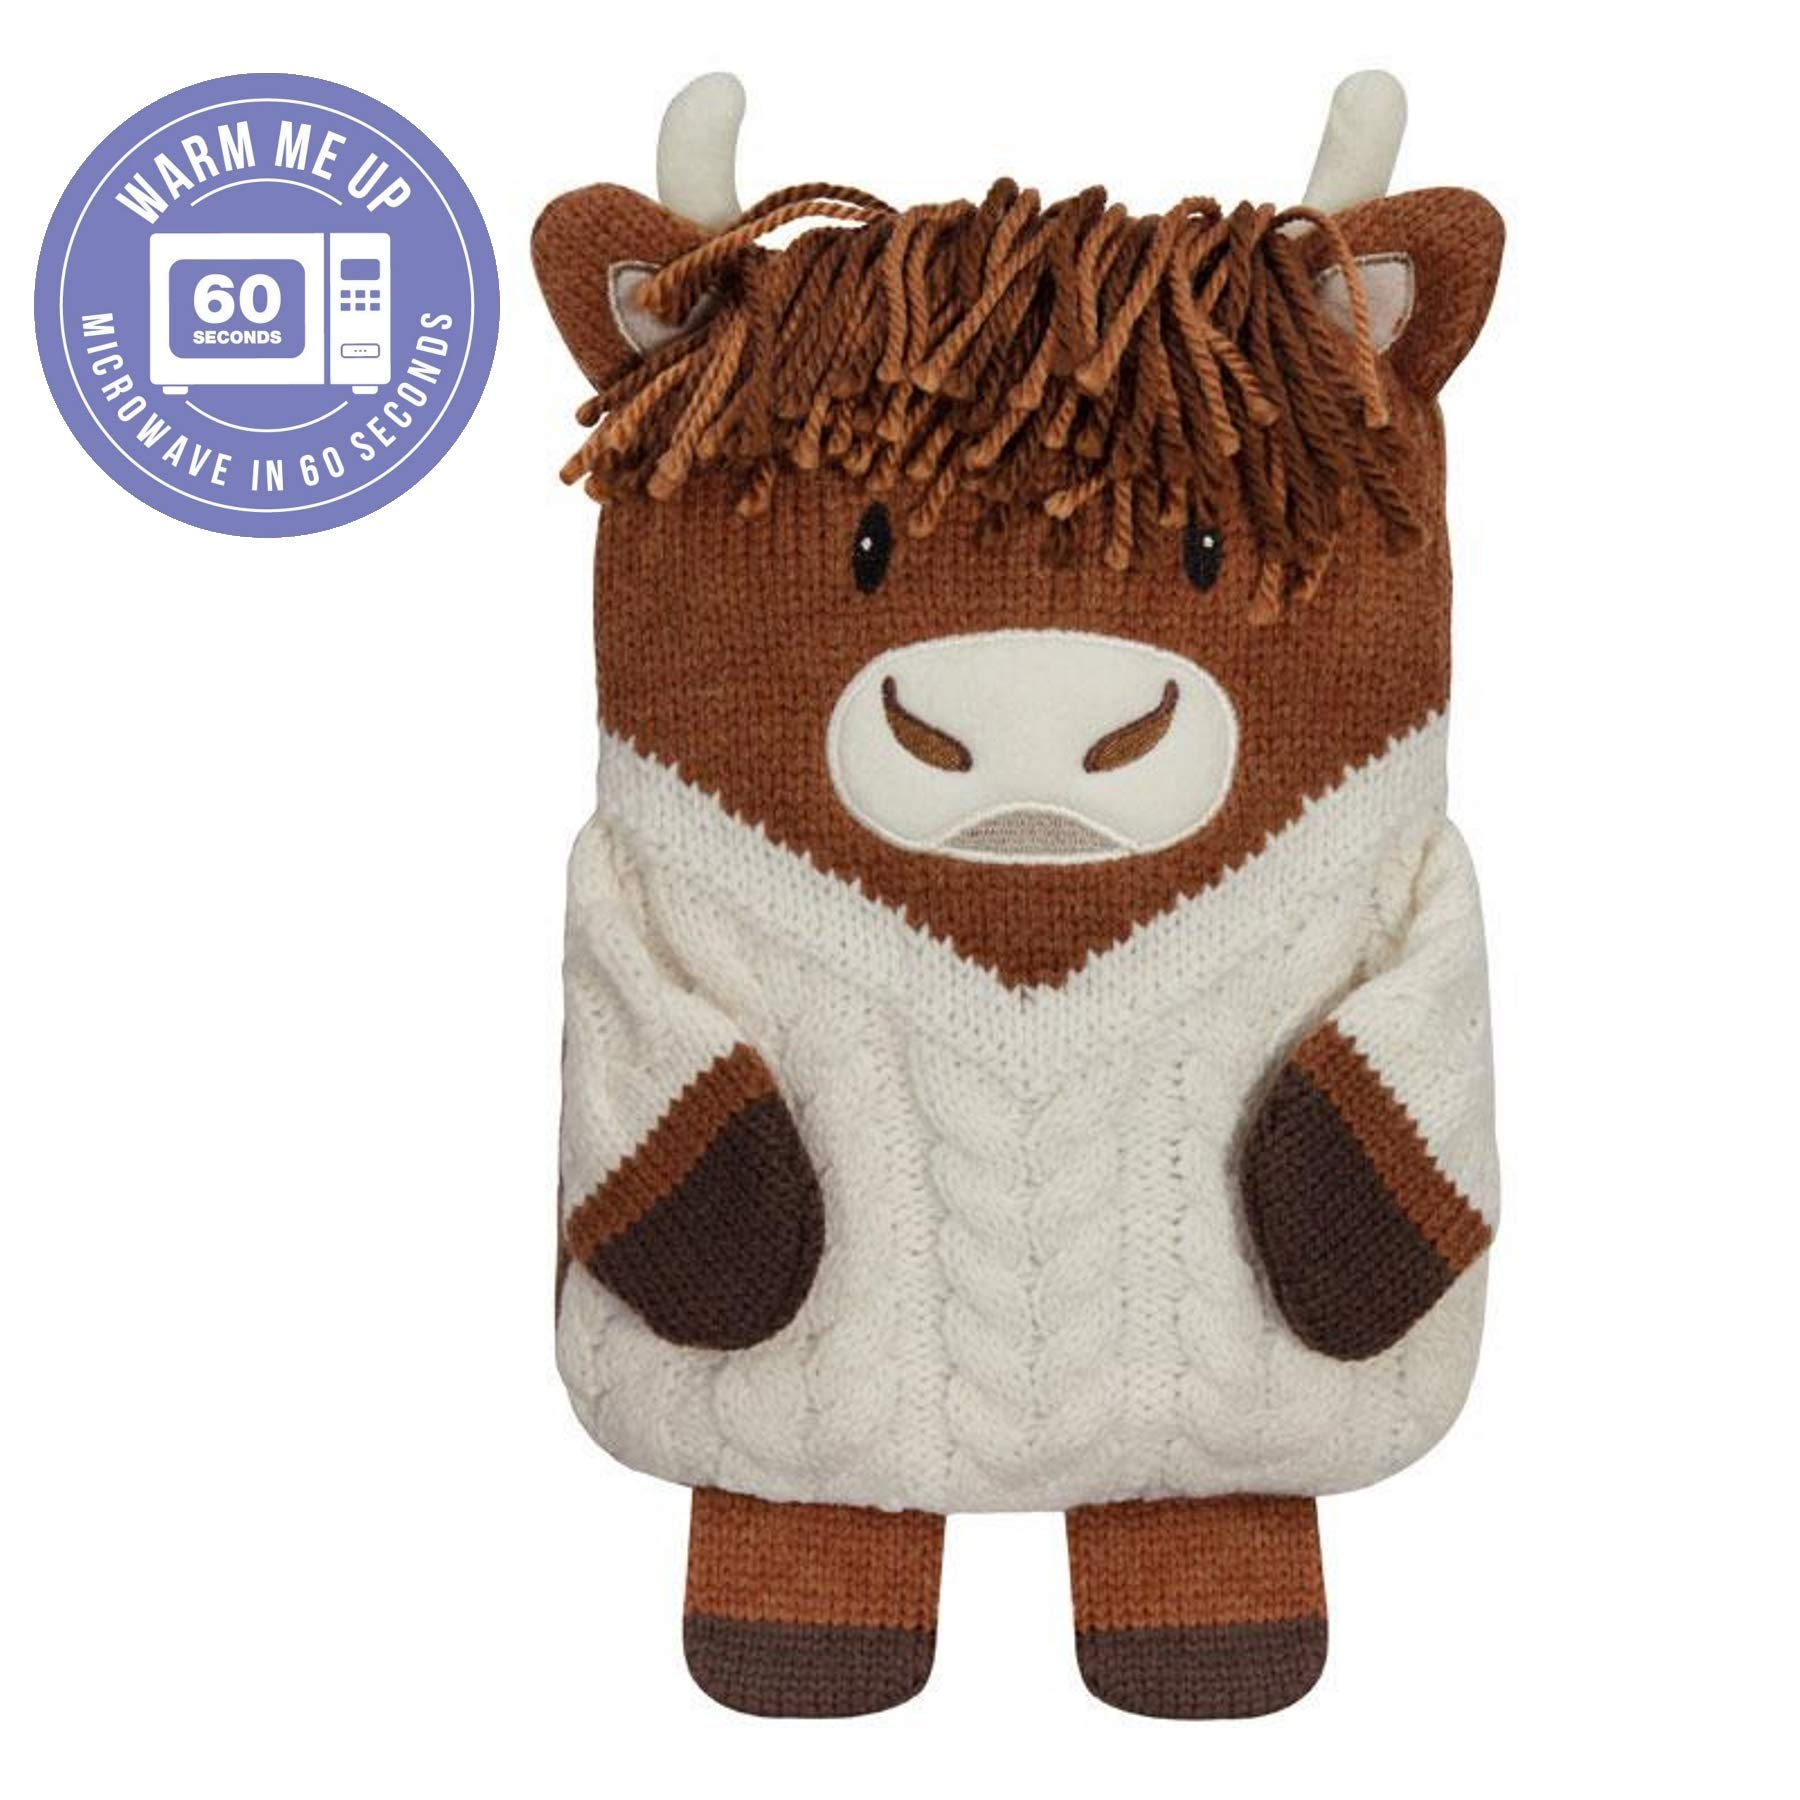 Aroma Home Knitted Hottie Microwavable Highland Cow Heatable Hot Water Bottle by Aroma Home